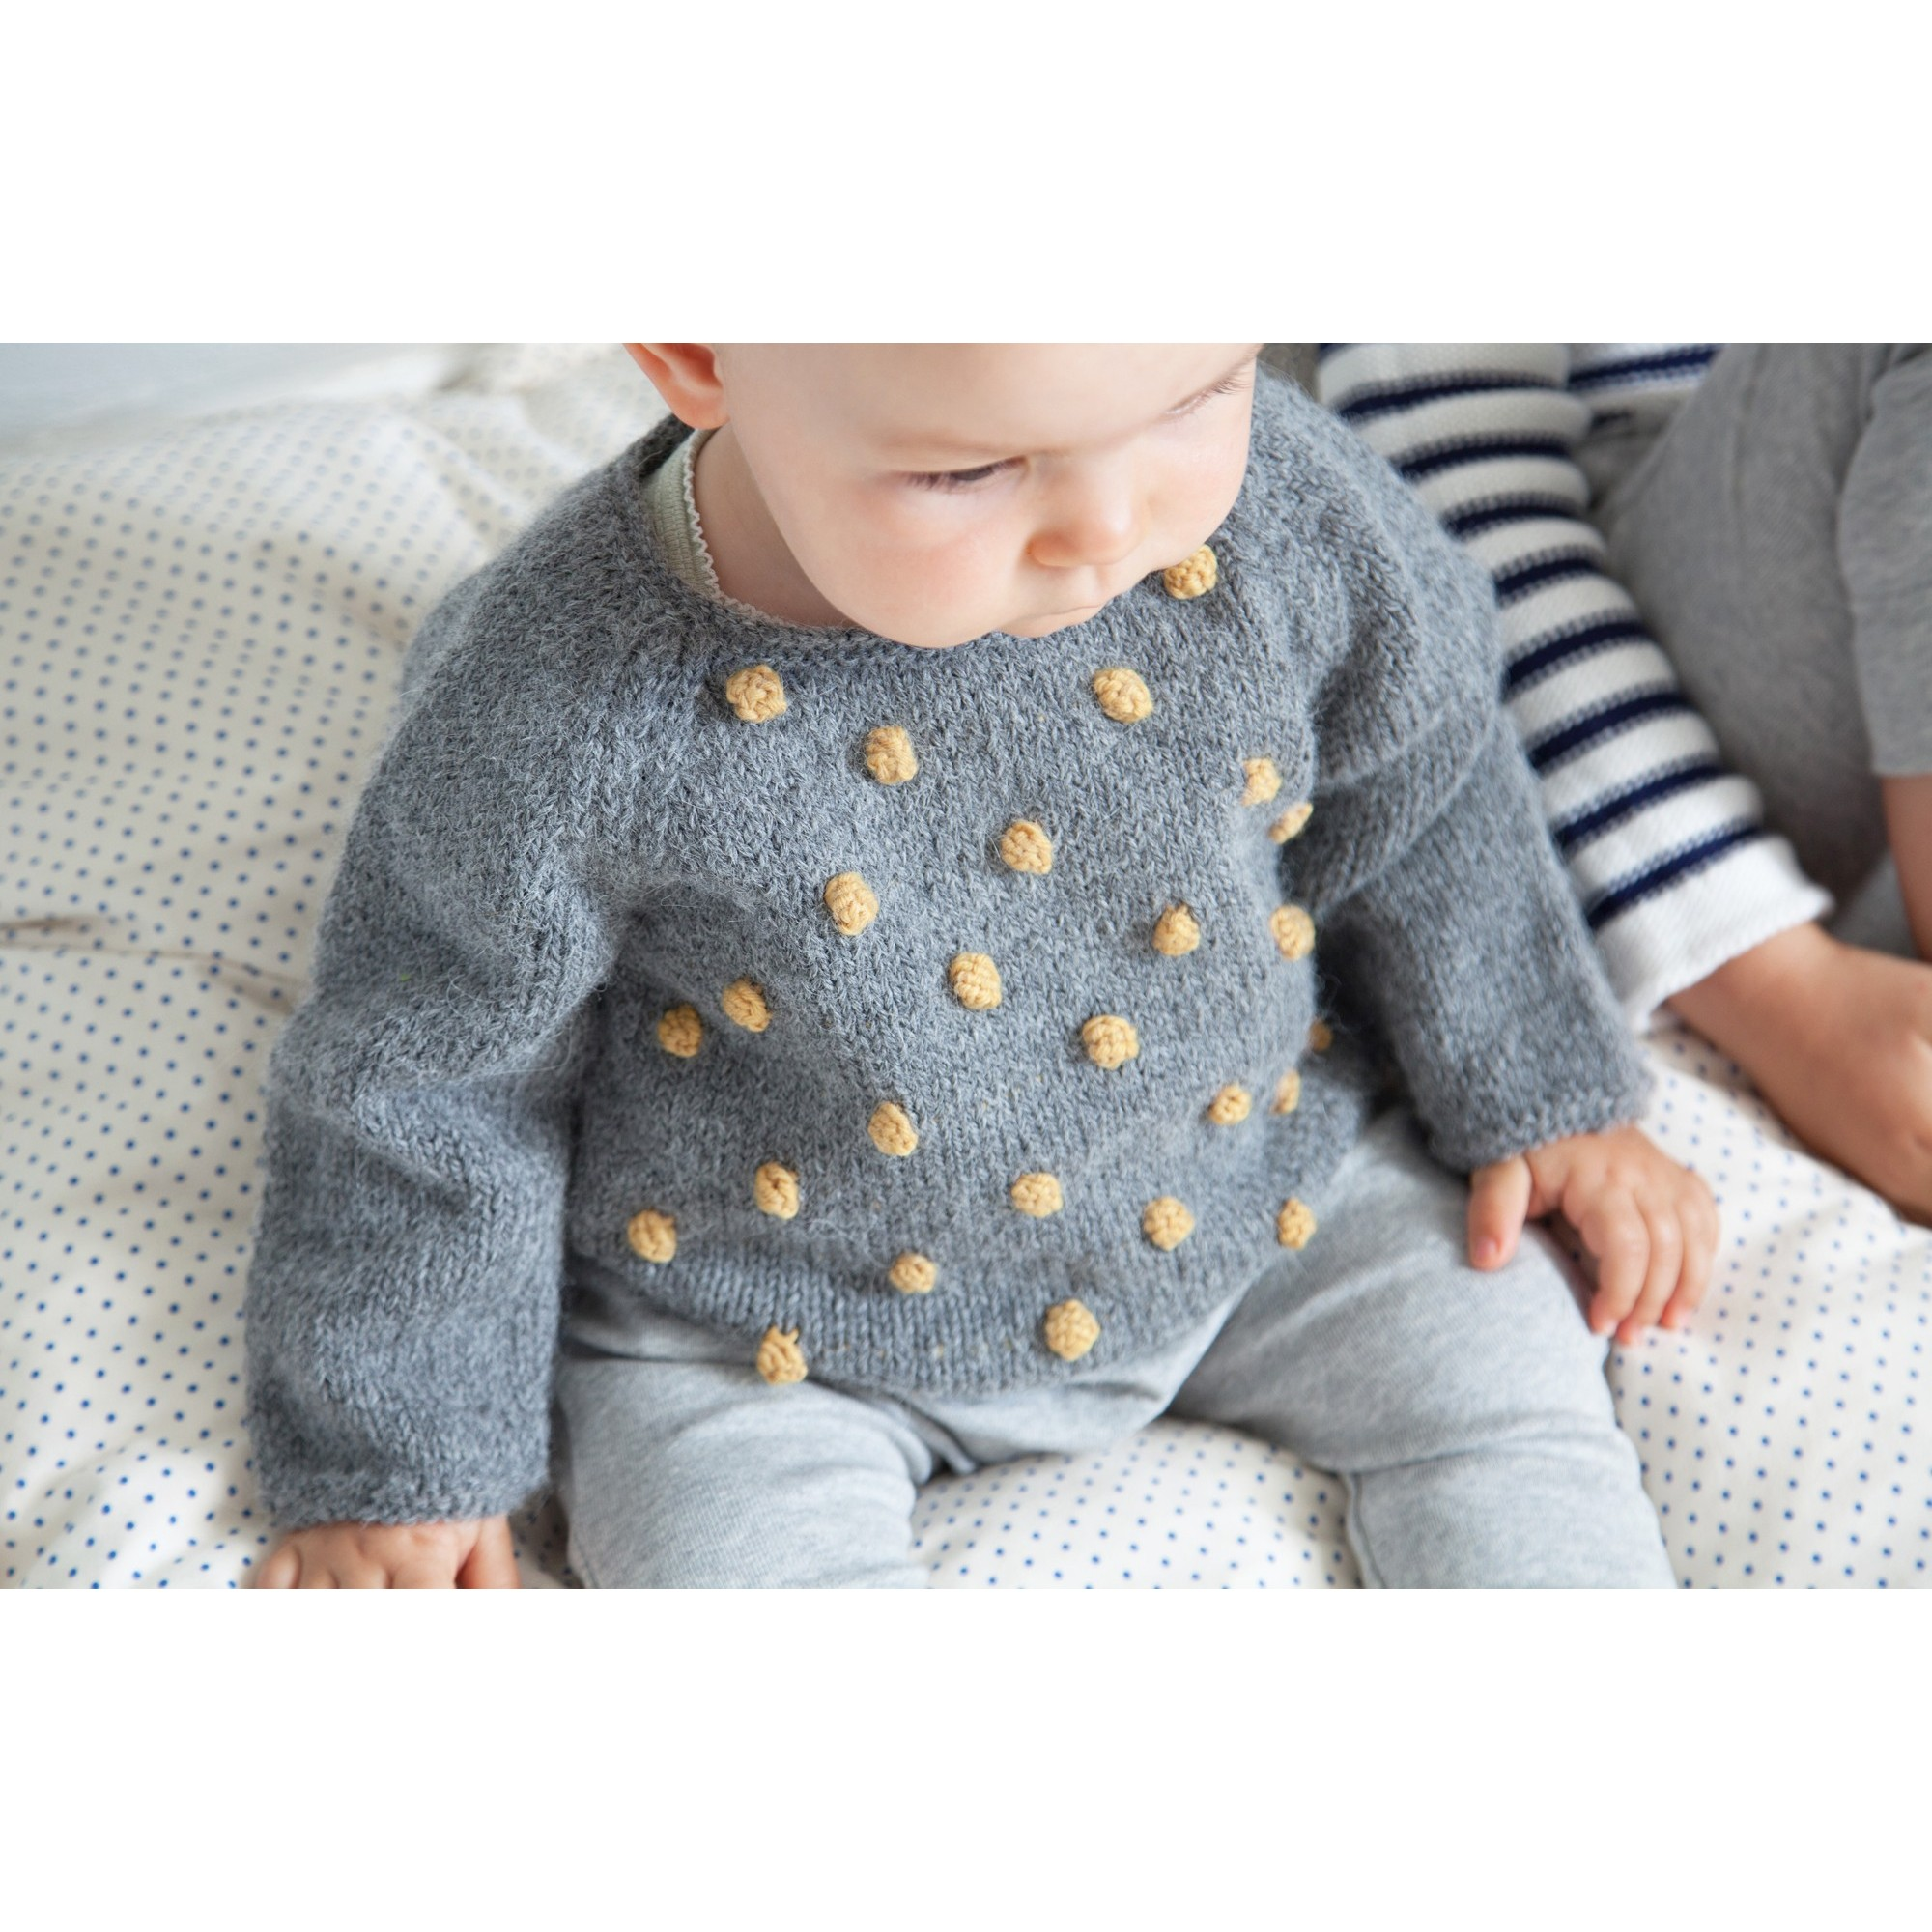 522aeca62 Granny s knitwear - Navy blue sweater for baby girls with small ...